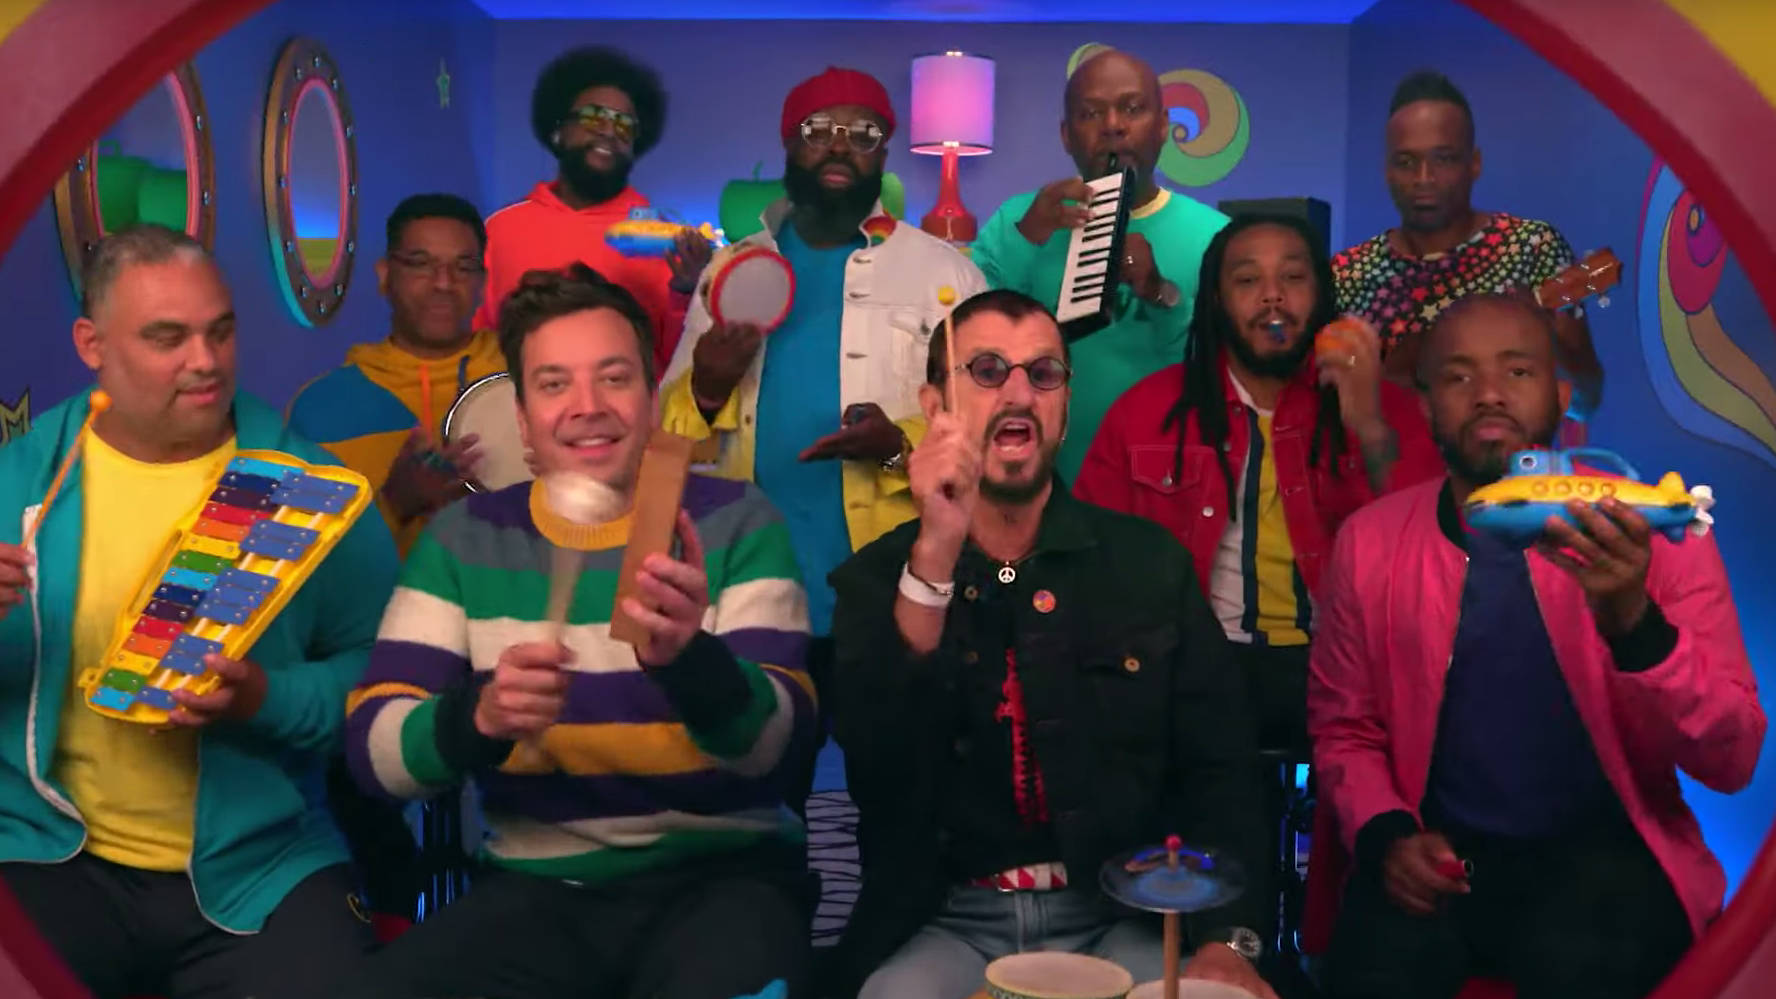 WATCH: Ringo Starr performs Yellow Submarine with classroom instruments on Jimmy Fallon